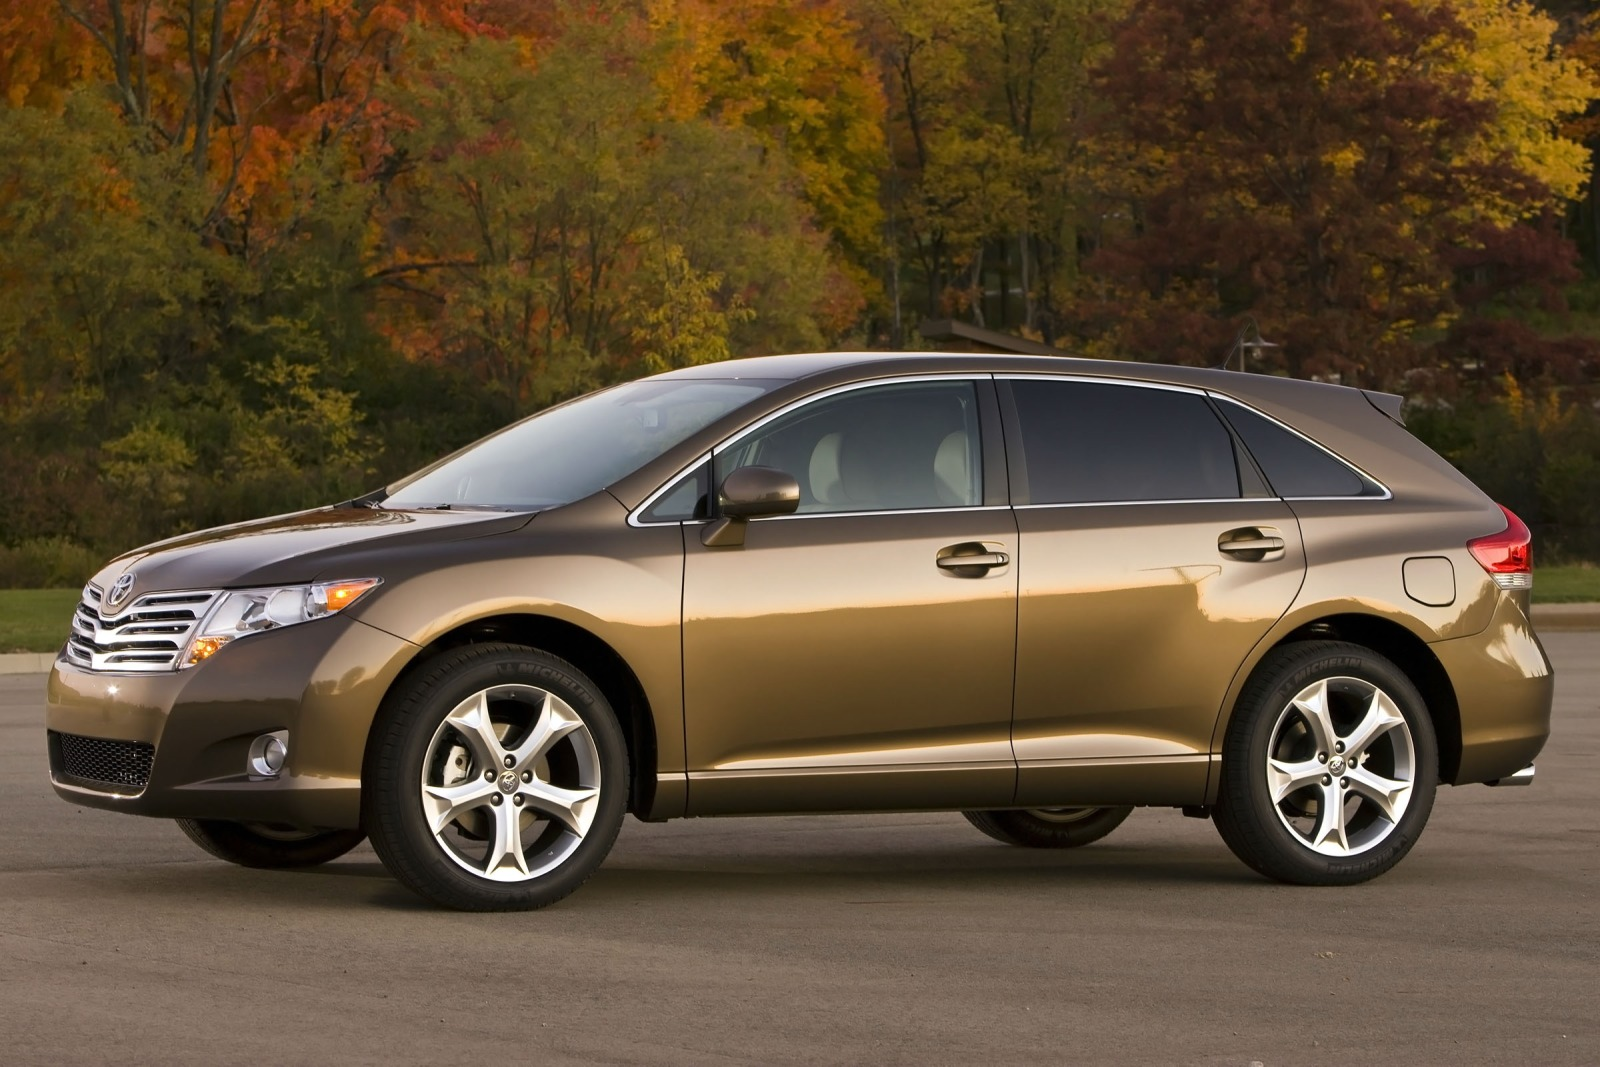 2012 Toyota Venza Limited exterior #5